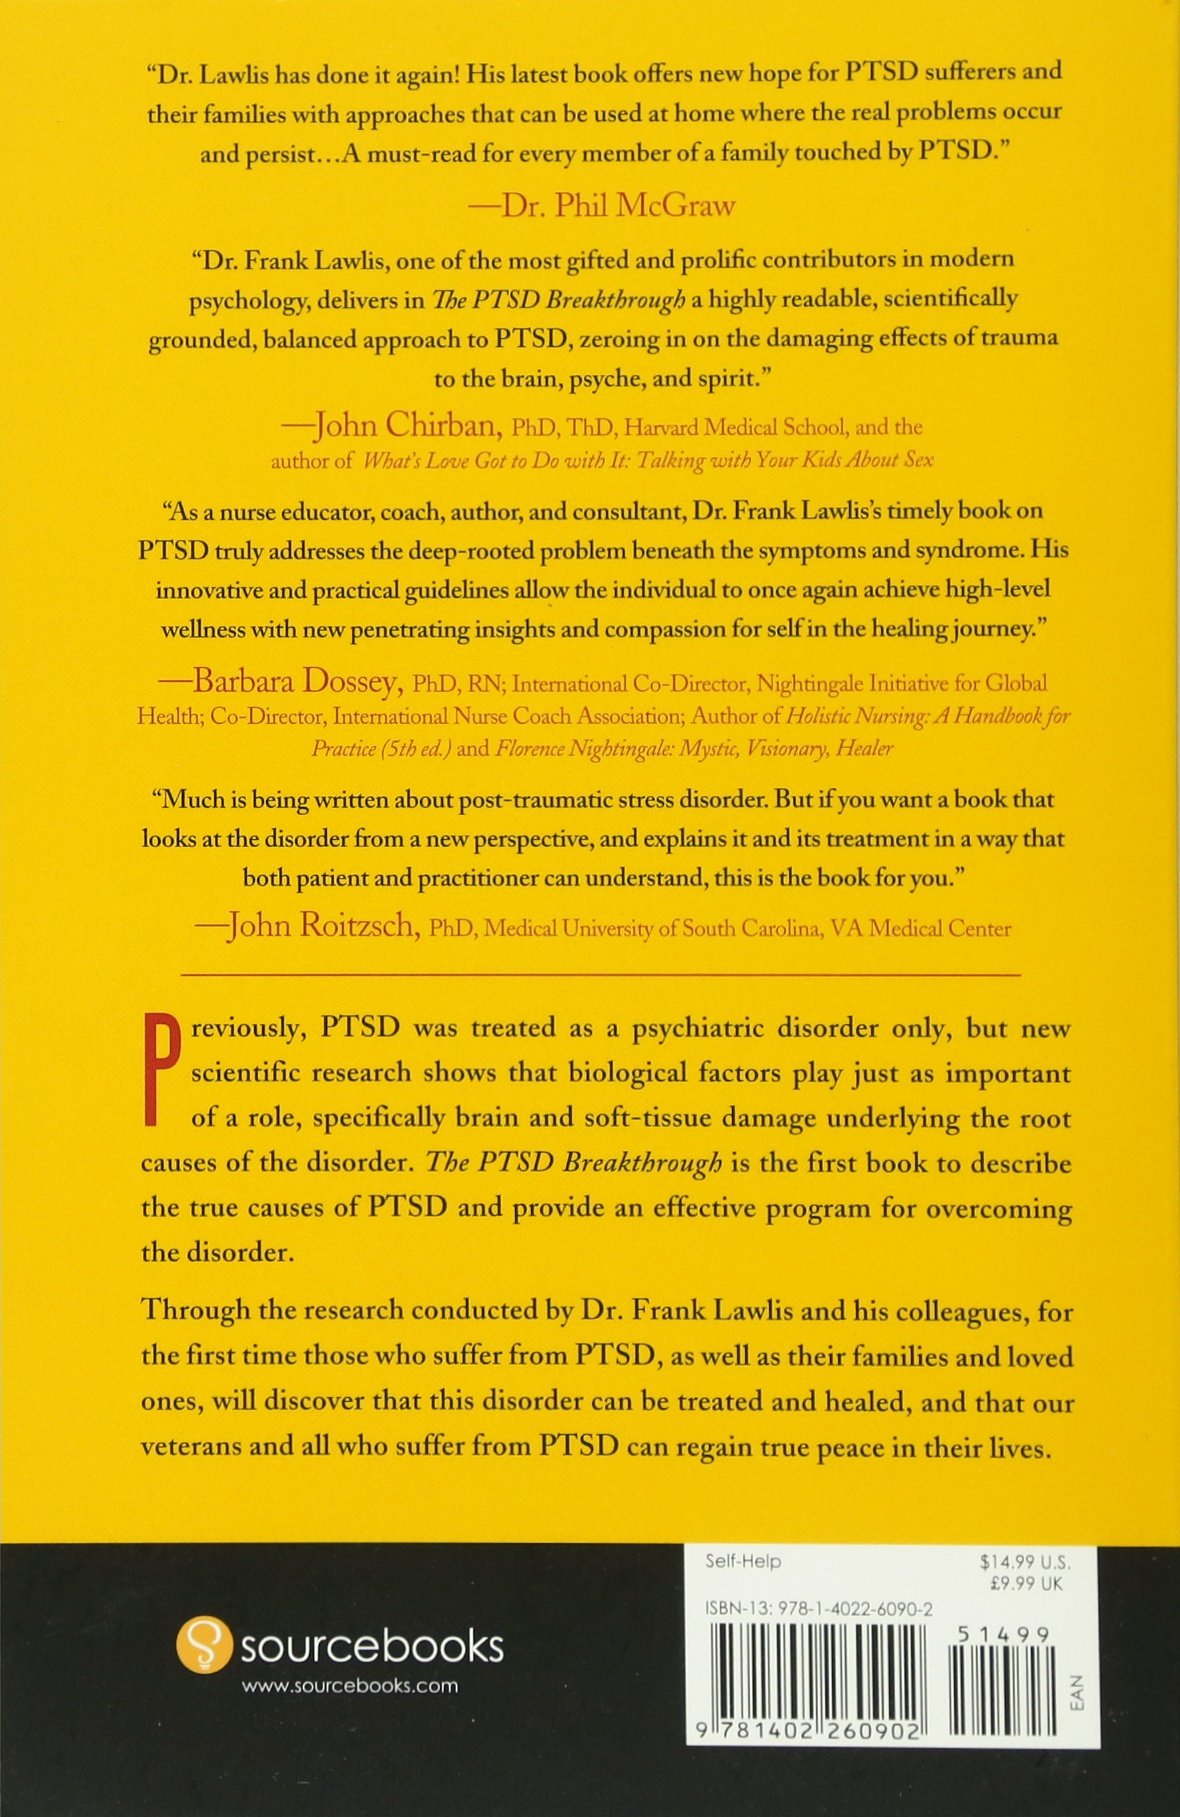 The PTSD Breakthrough: The Revolutionary, Science-Based Compass RESET  Program: Frank Lawlis Dr.: 0760789234880: Amazon.com: Books